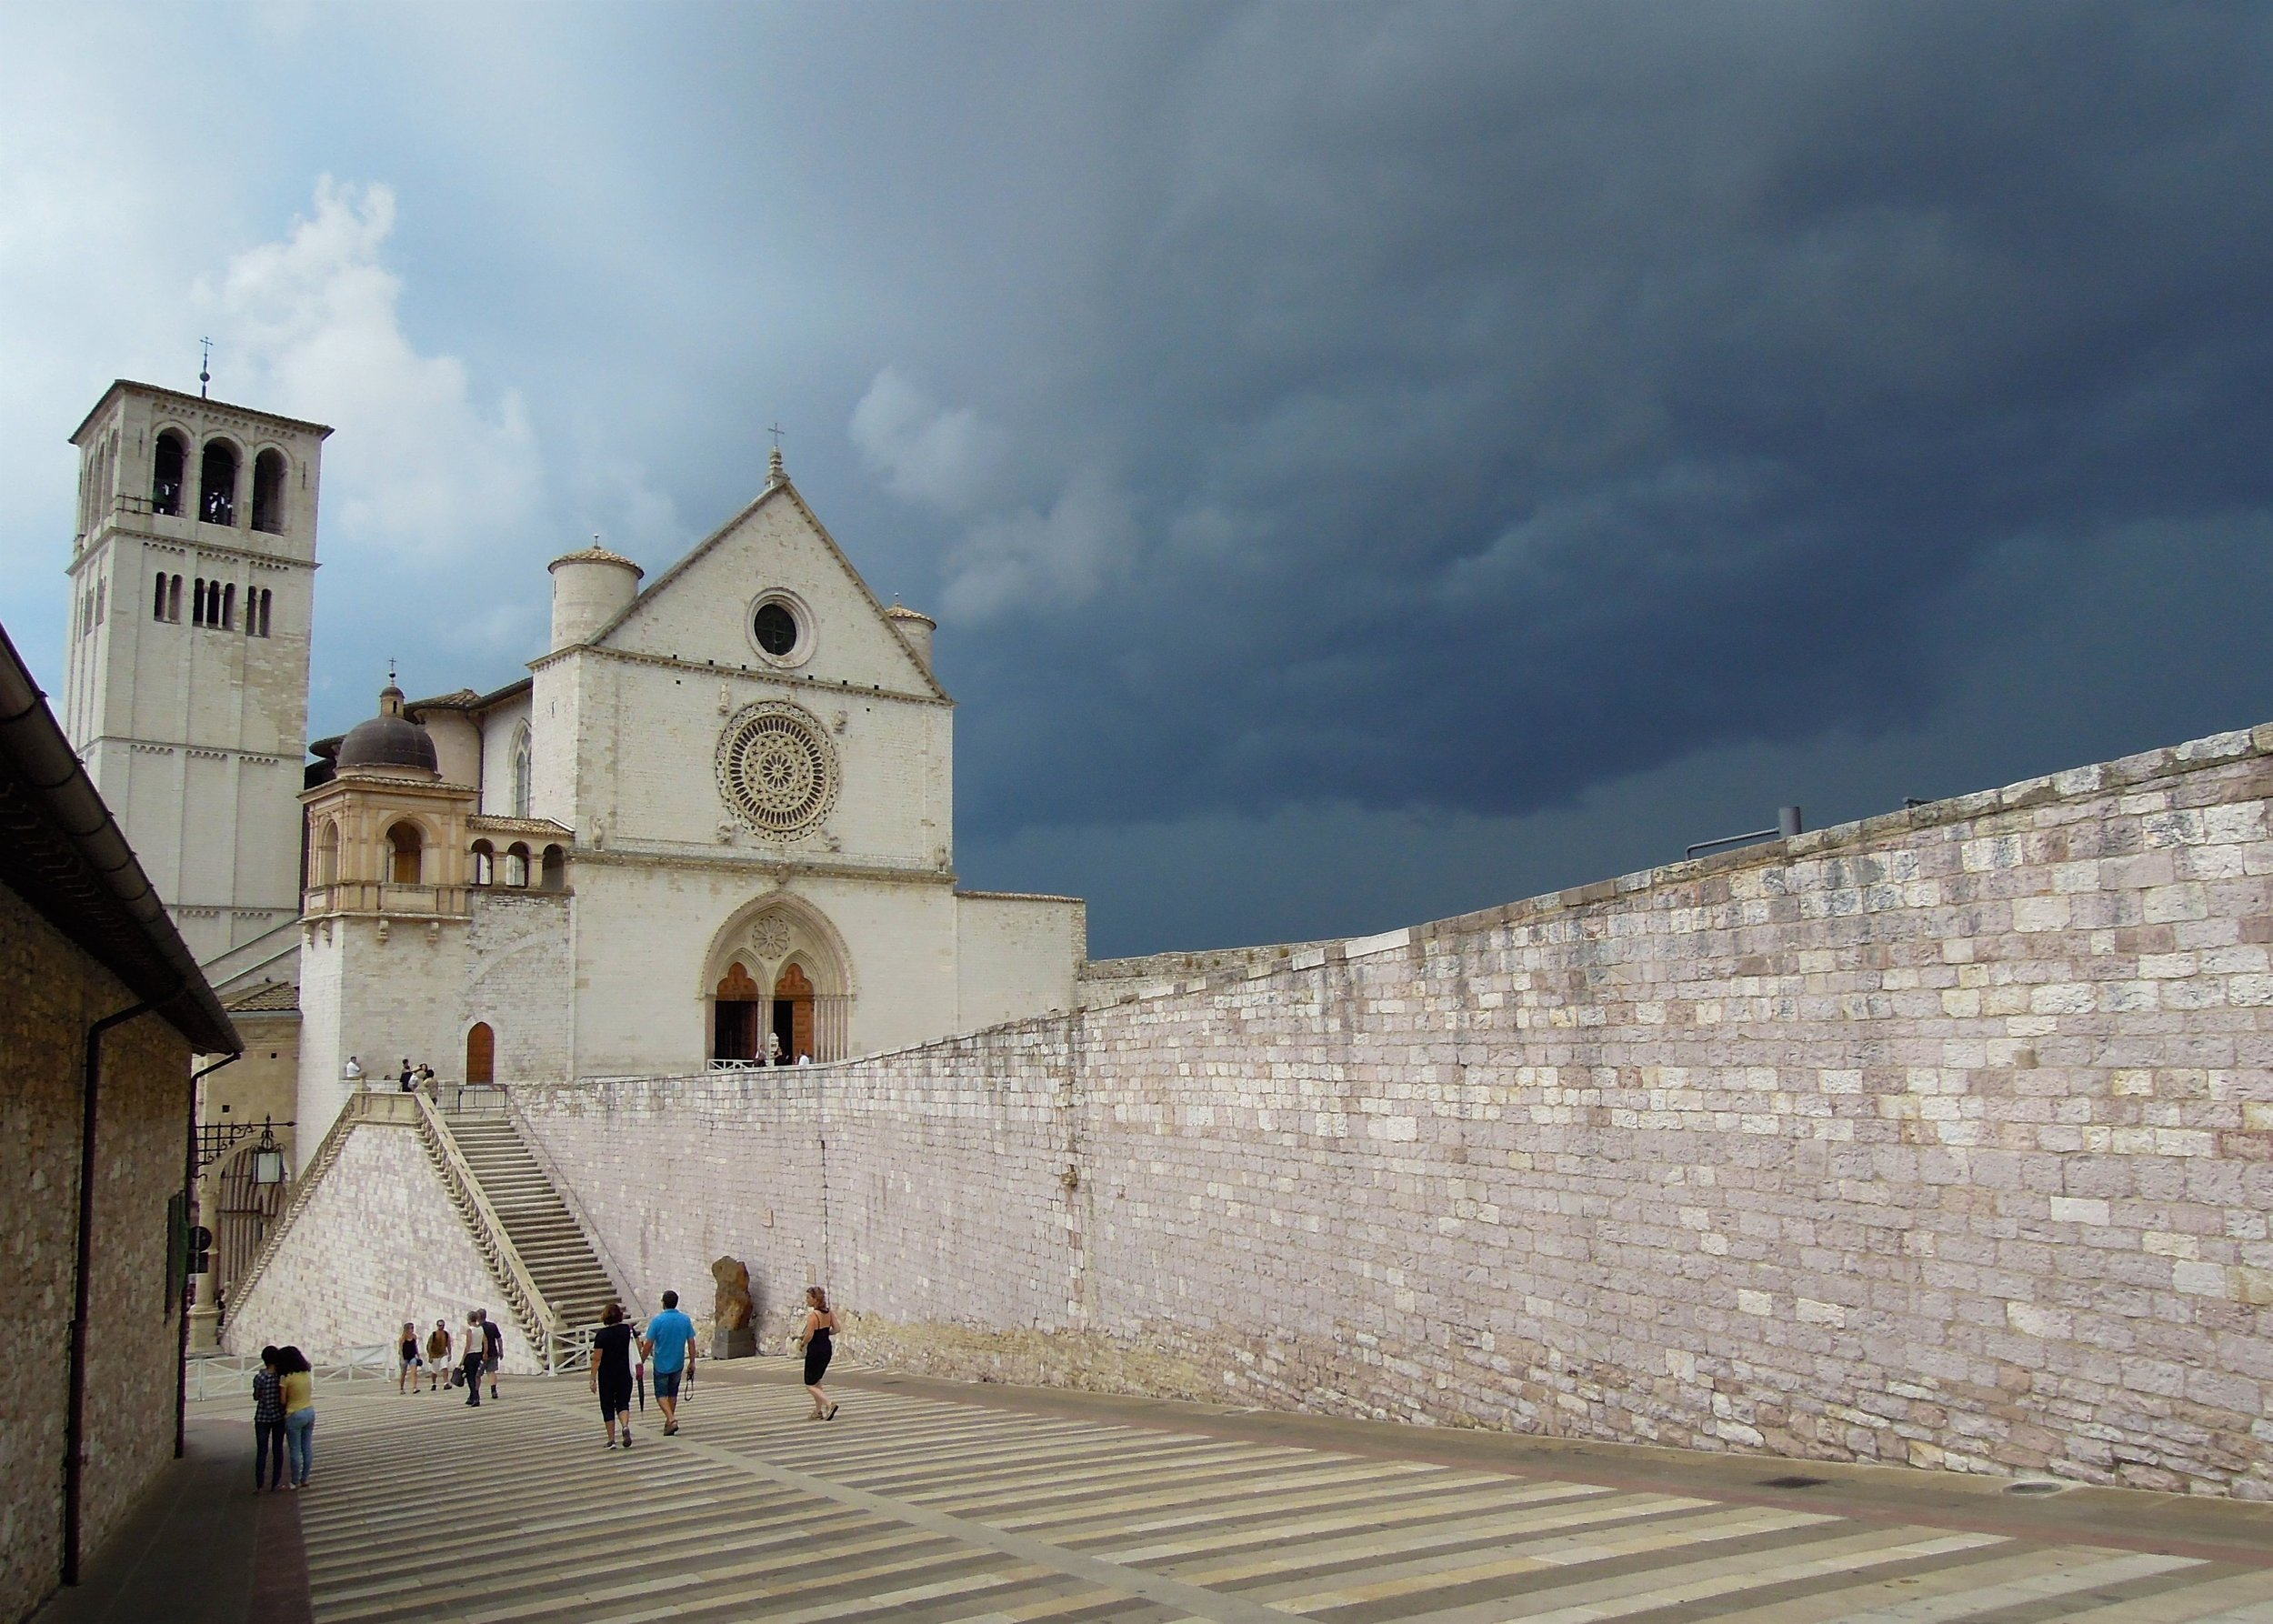 The skies about to break loose above Basilica of Saint Francis of Assisi. I highly recommend you also see the inside. Photograph: Alison Testroete